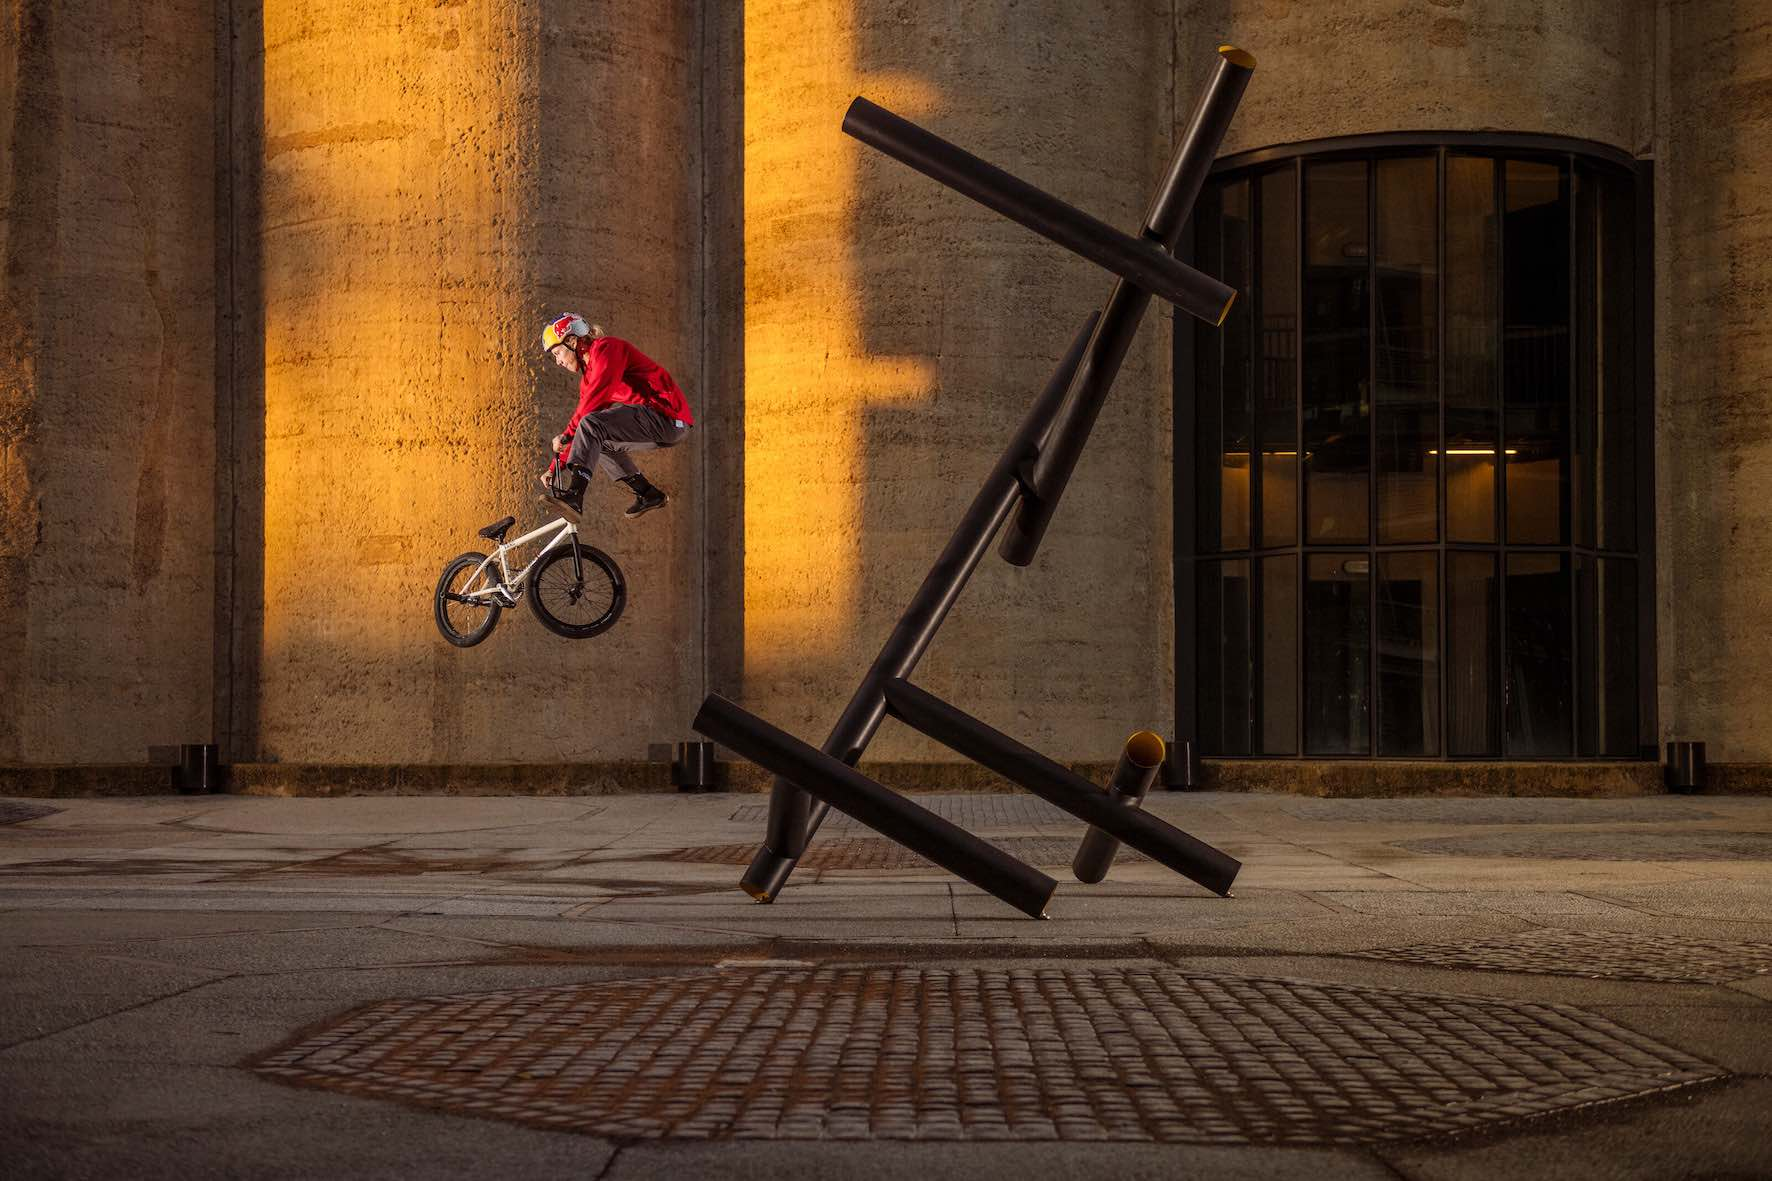 Murray Loubser performs a Switch Tailwhip off a Sculpture in Cape Town